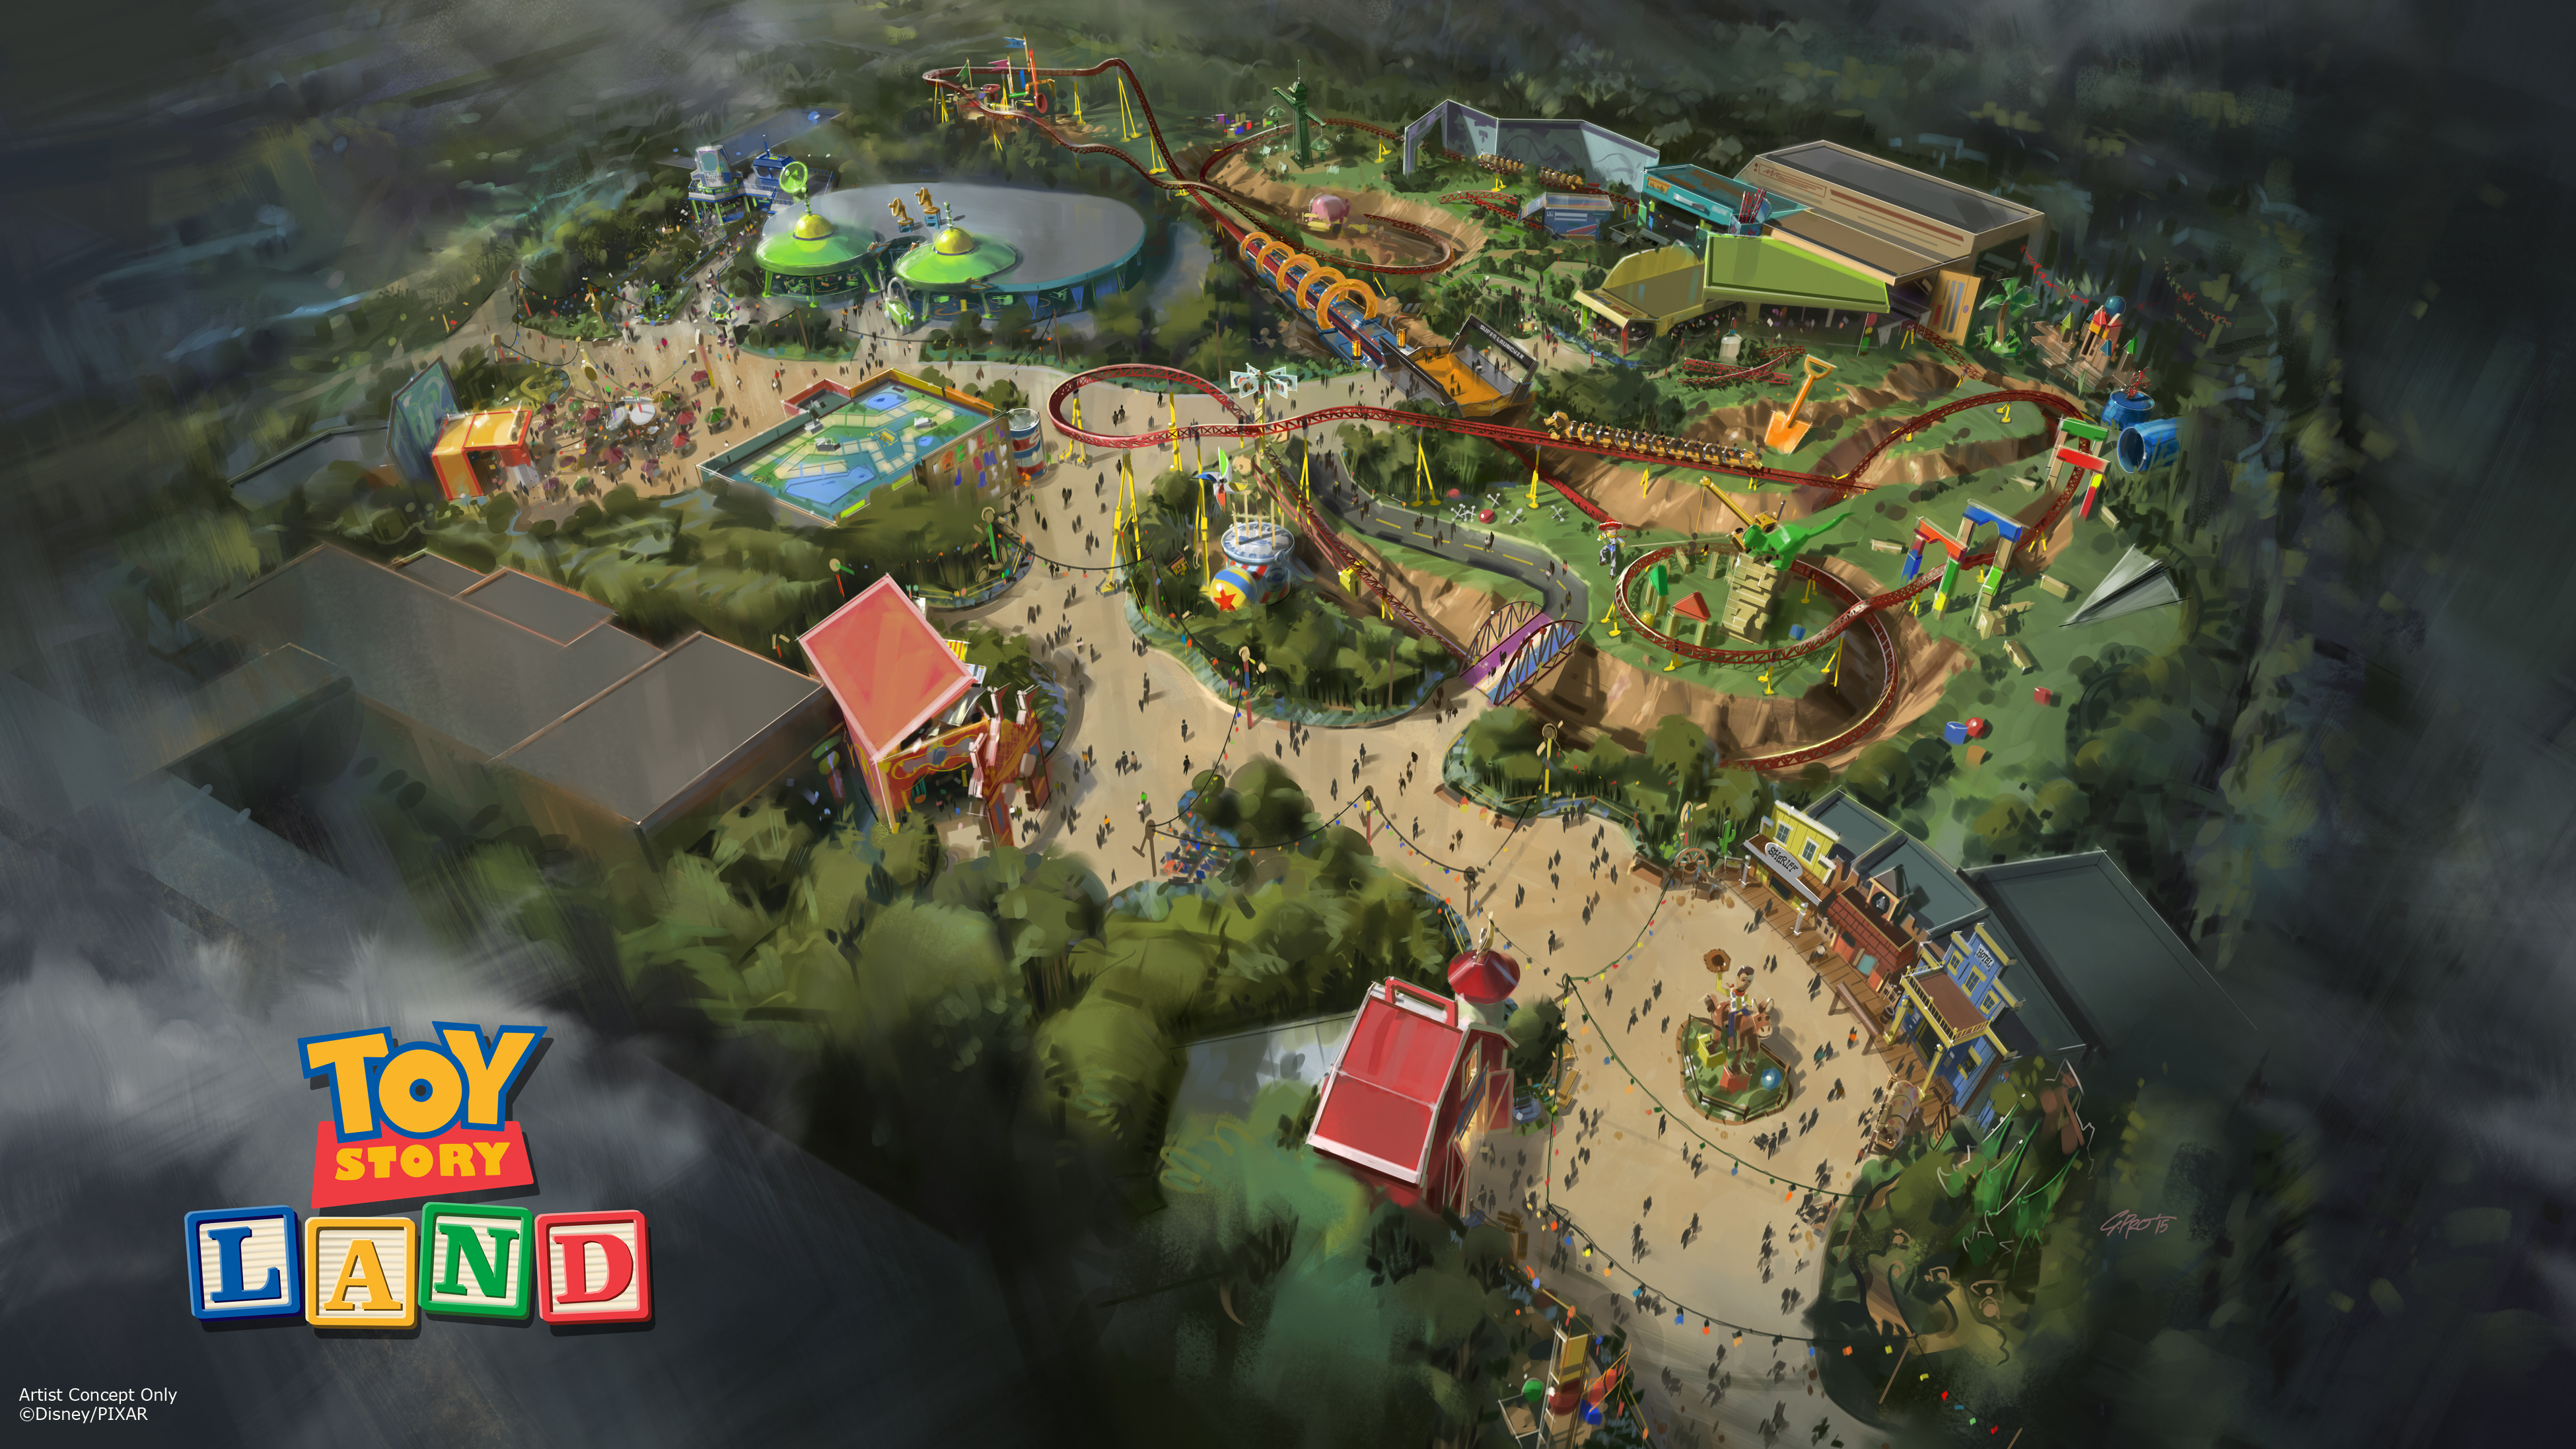 Toy-Story-Land_Full_25052.jpg